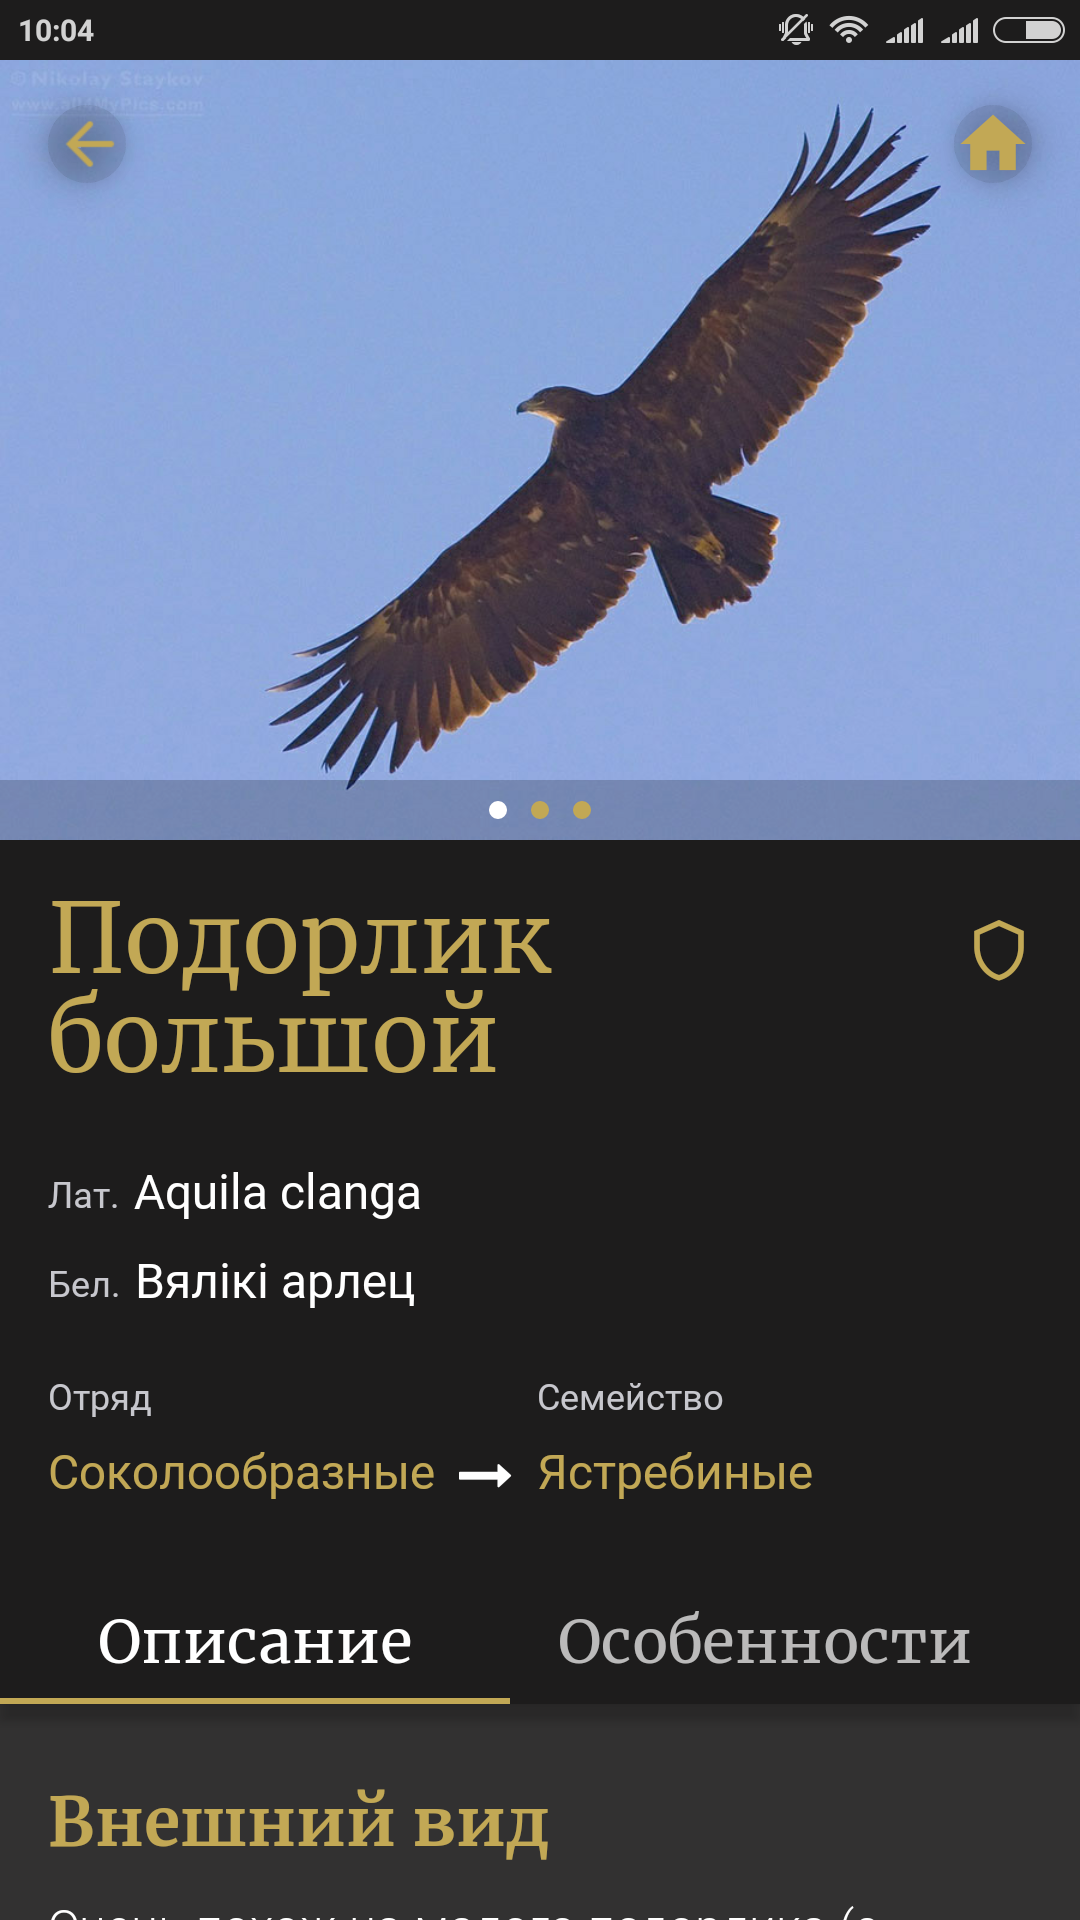 Screenshot_2018-11-23-10-04-14-422_com.apbbirdsguide.app